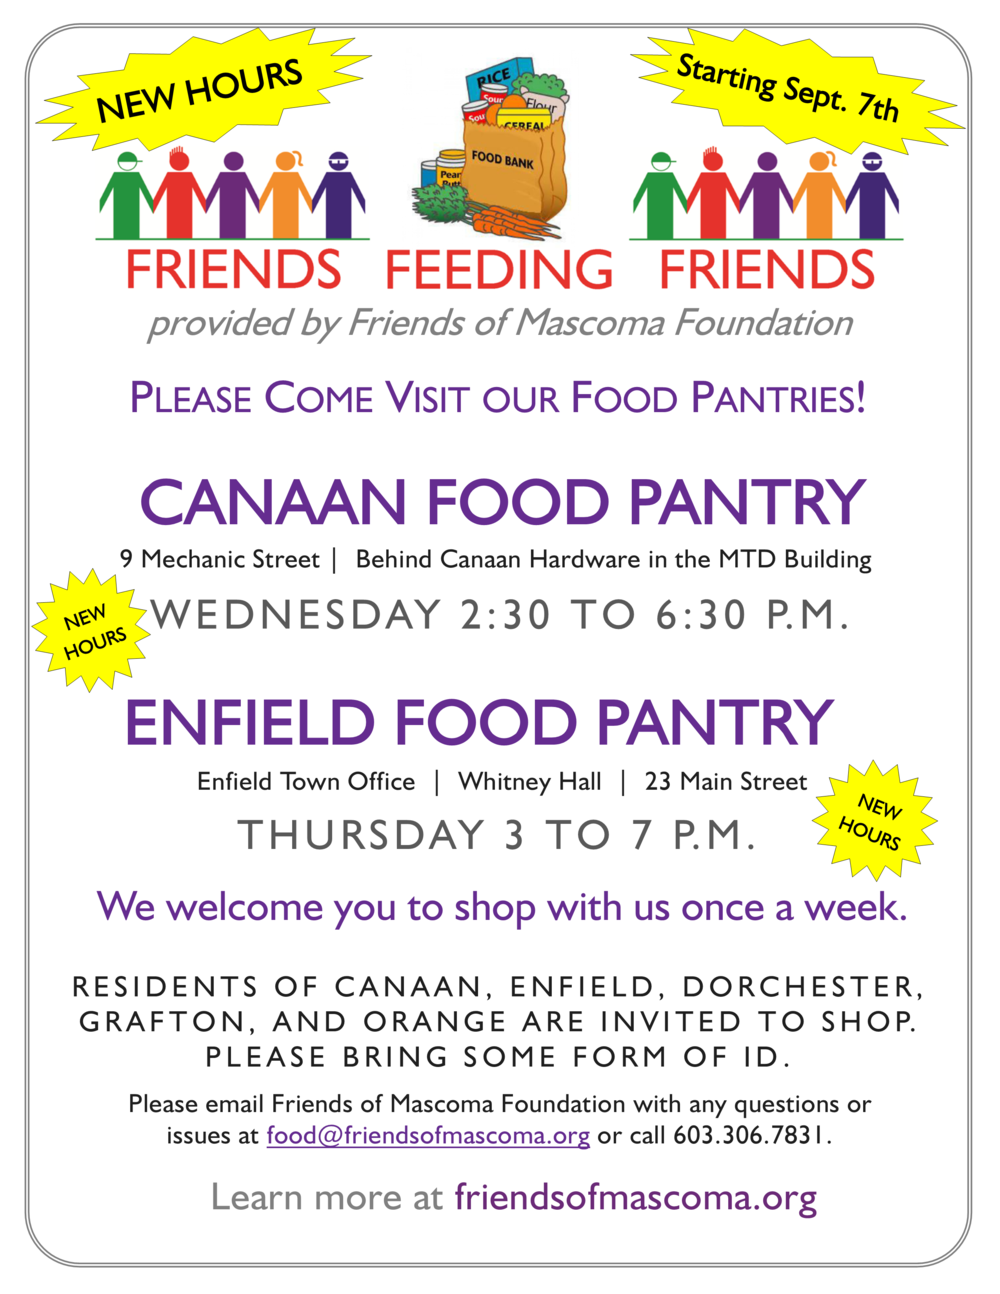 NEW Food Pantry Hours in Canaan Enfield Friends of Mascoma